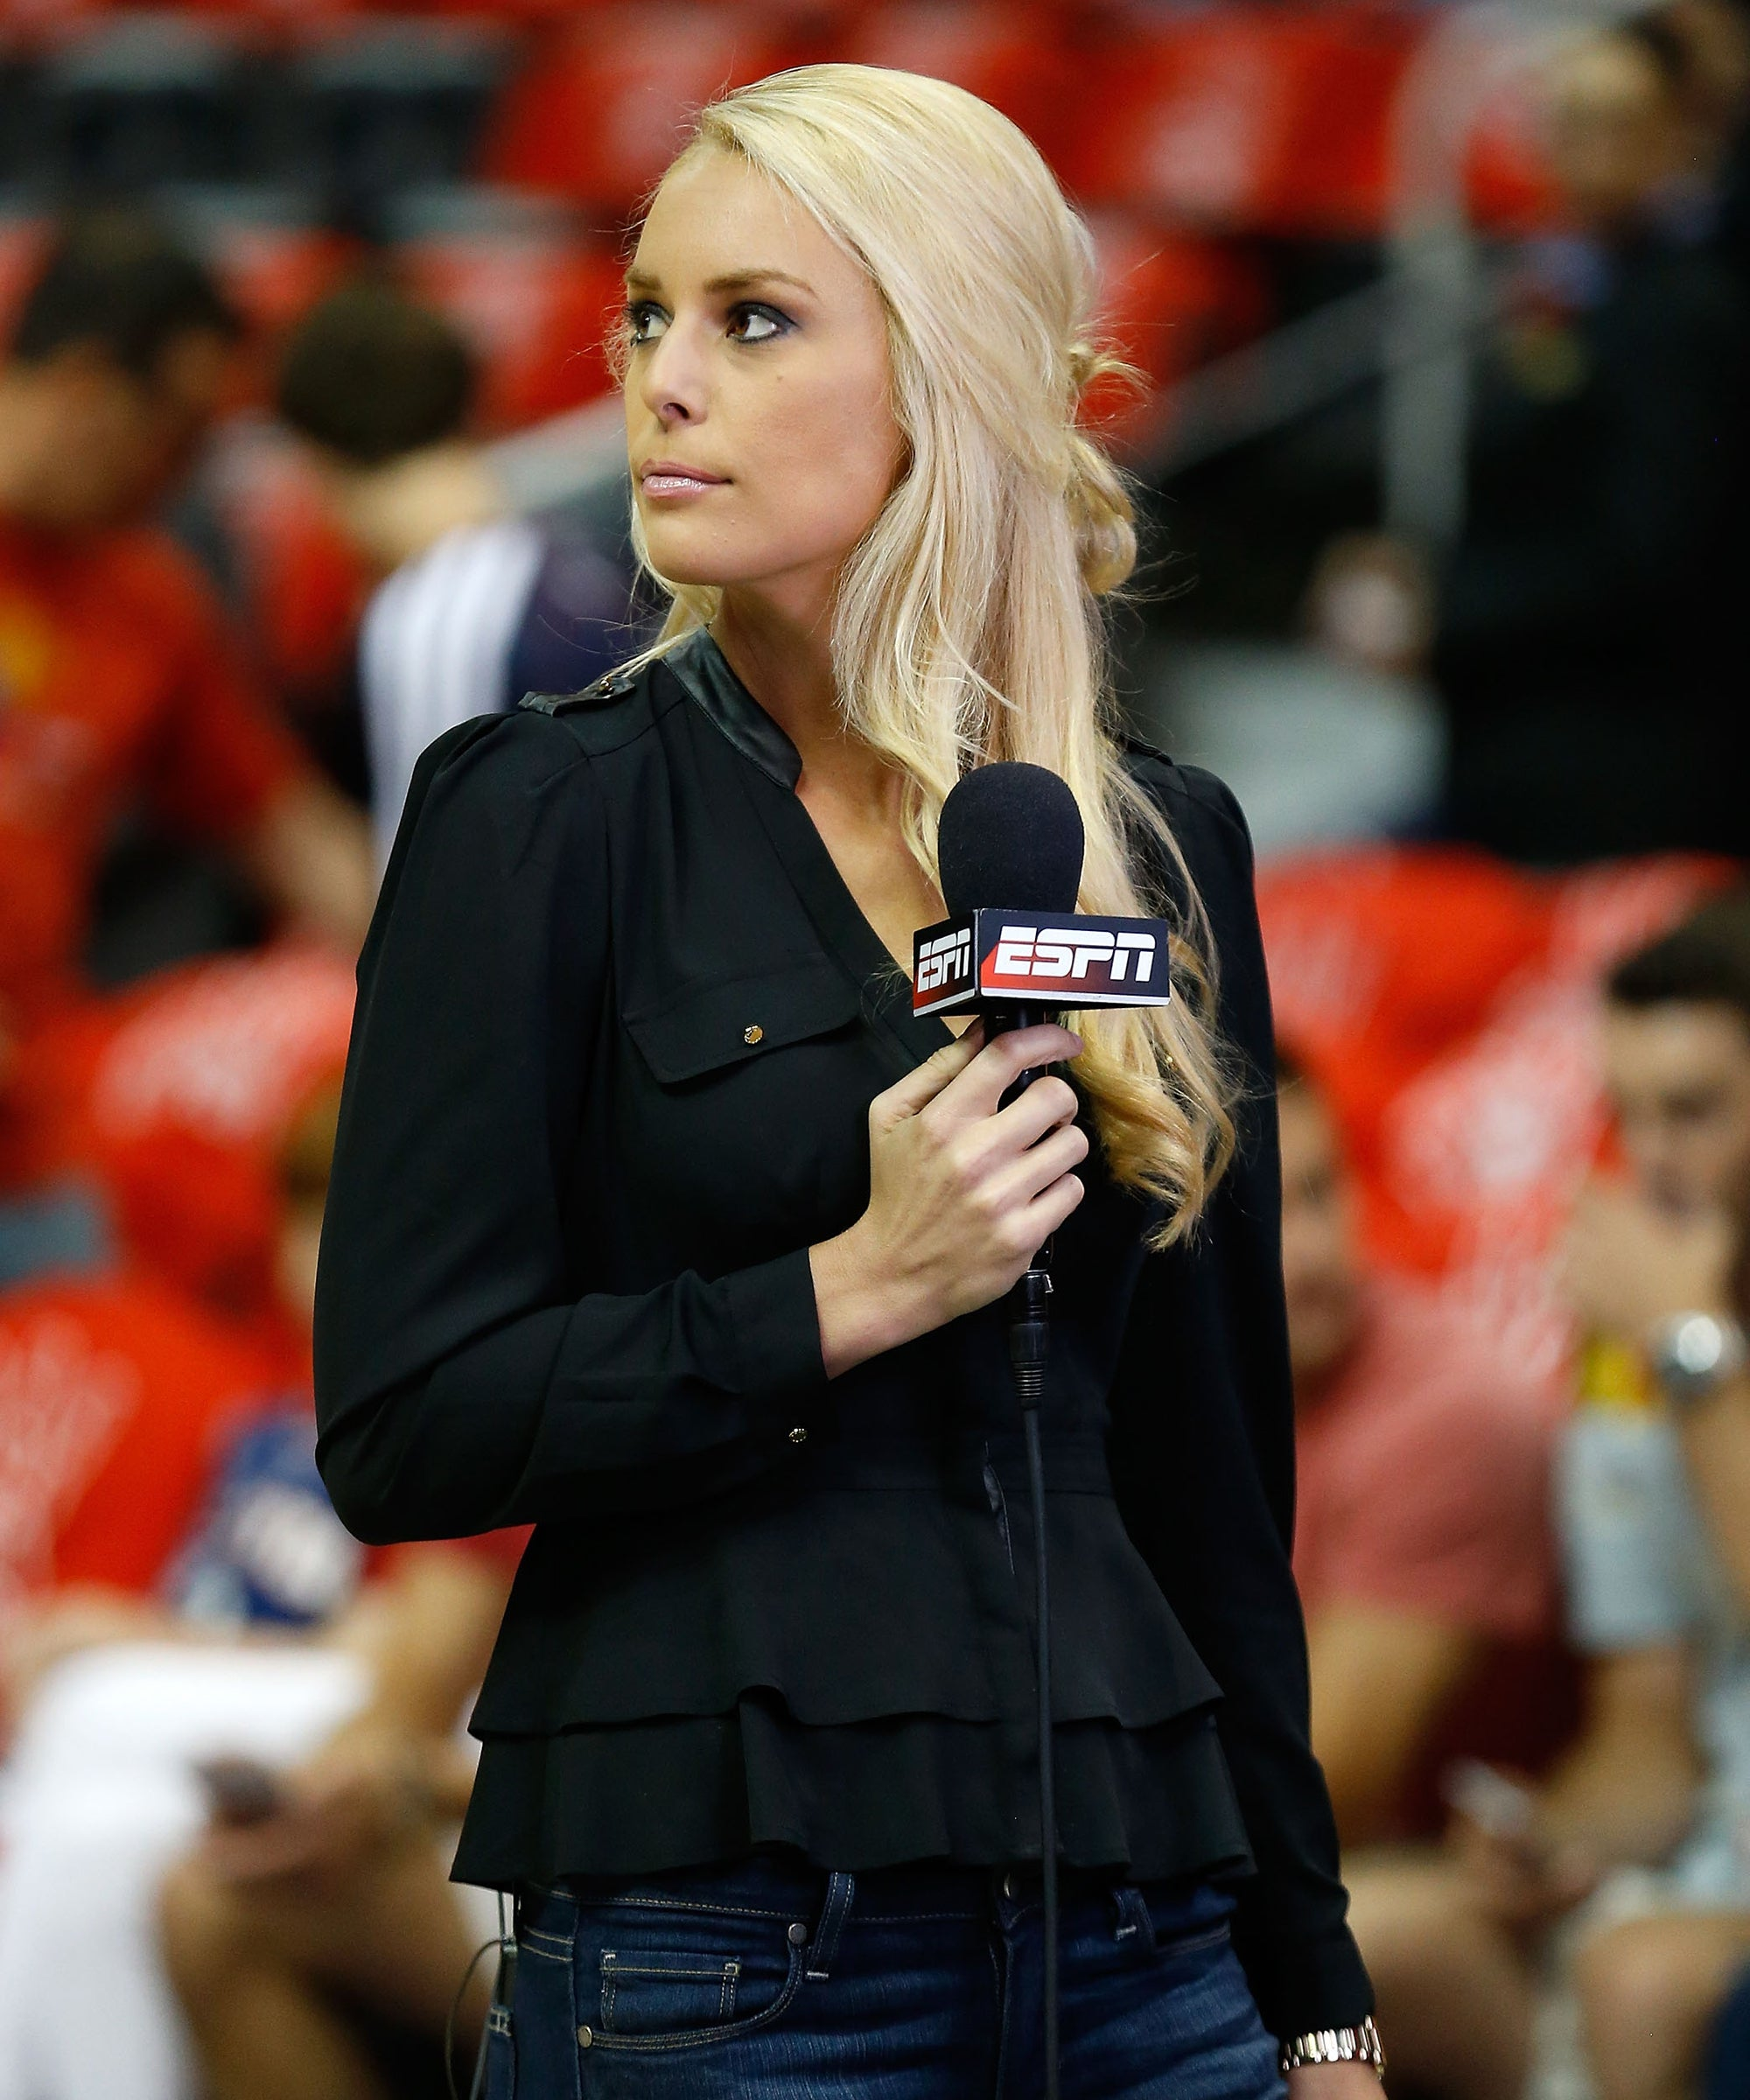 Britt McHenry Is The Latest Woman To Sue Fox News For Sexual Harassment